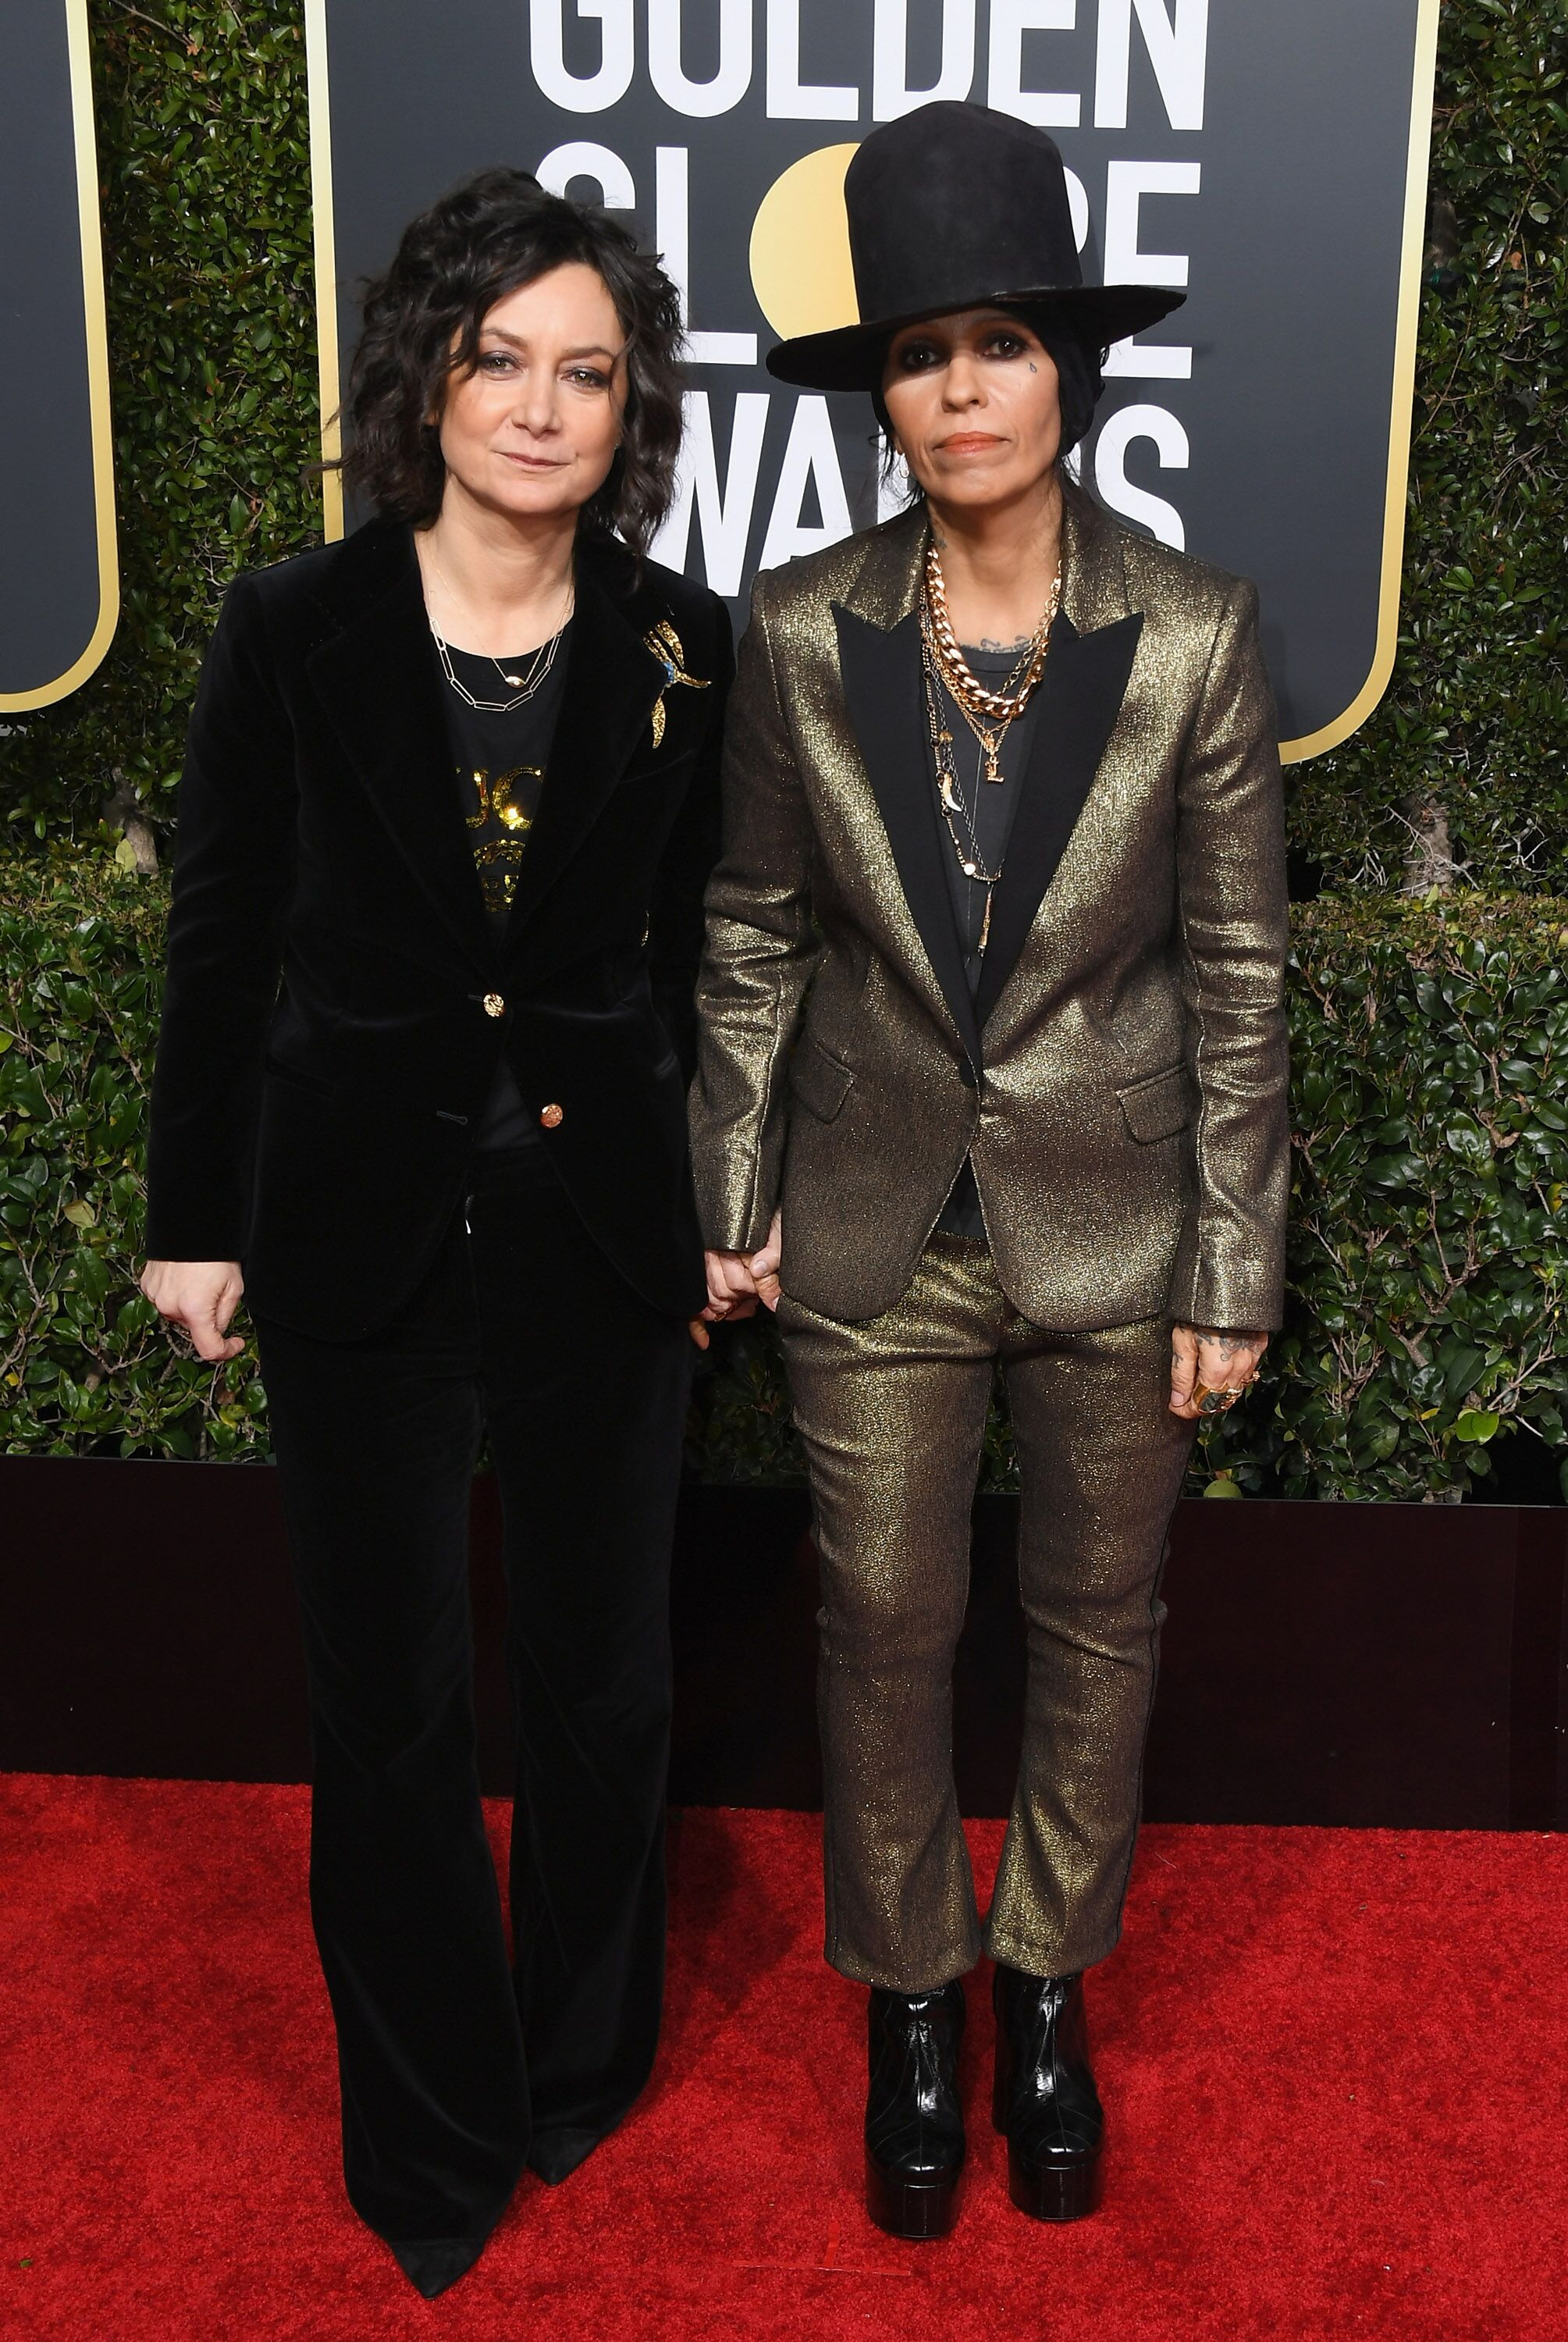 Sara Gilbert and Linda Perry attend the 76th Annual Golden Globe Awards at The Beverly Hilton Hotel | Getty Images / Global Images Ukraine